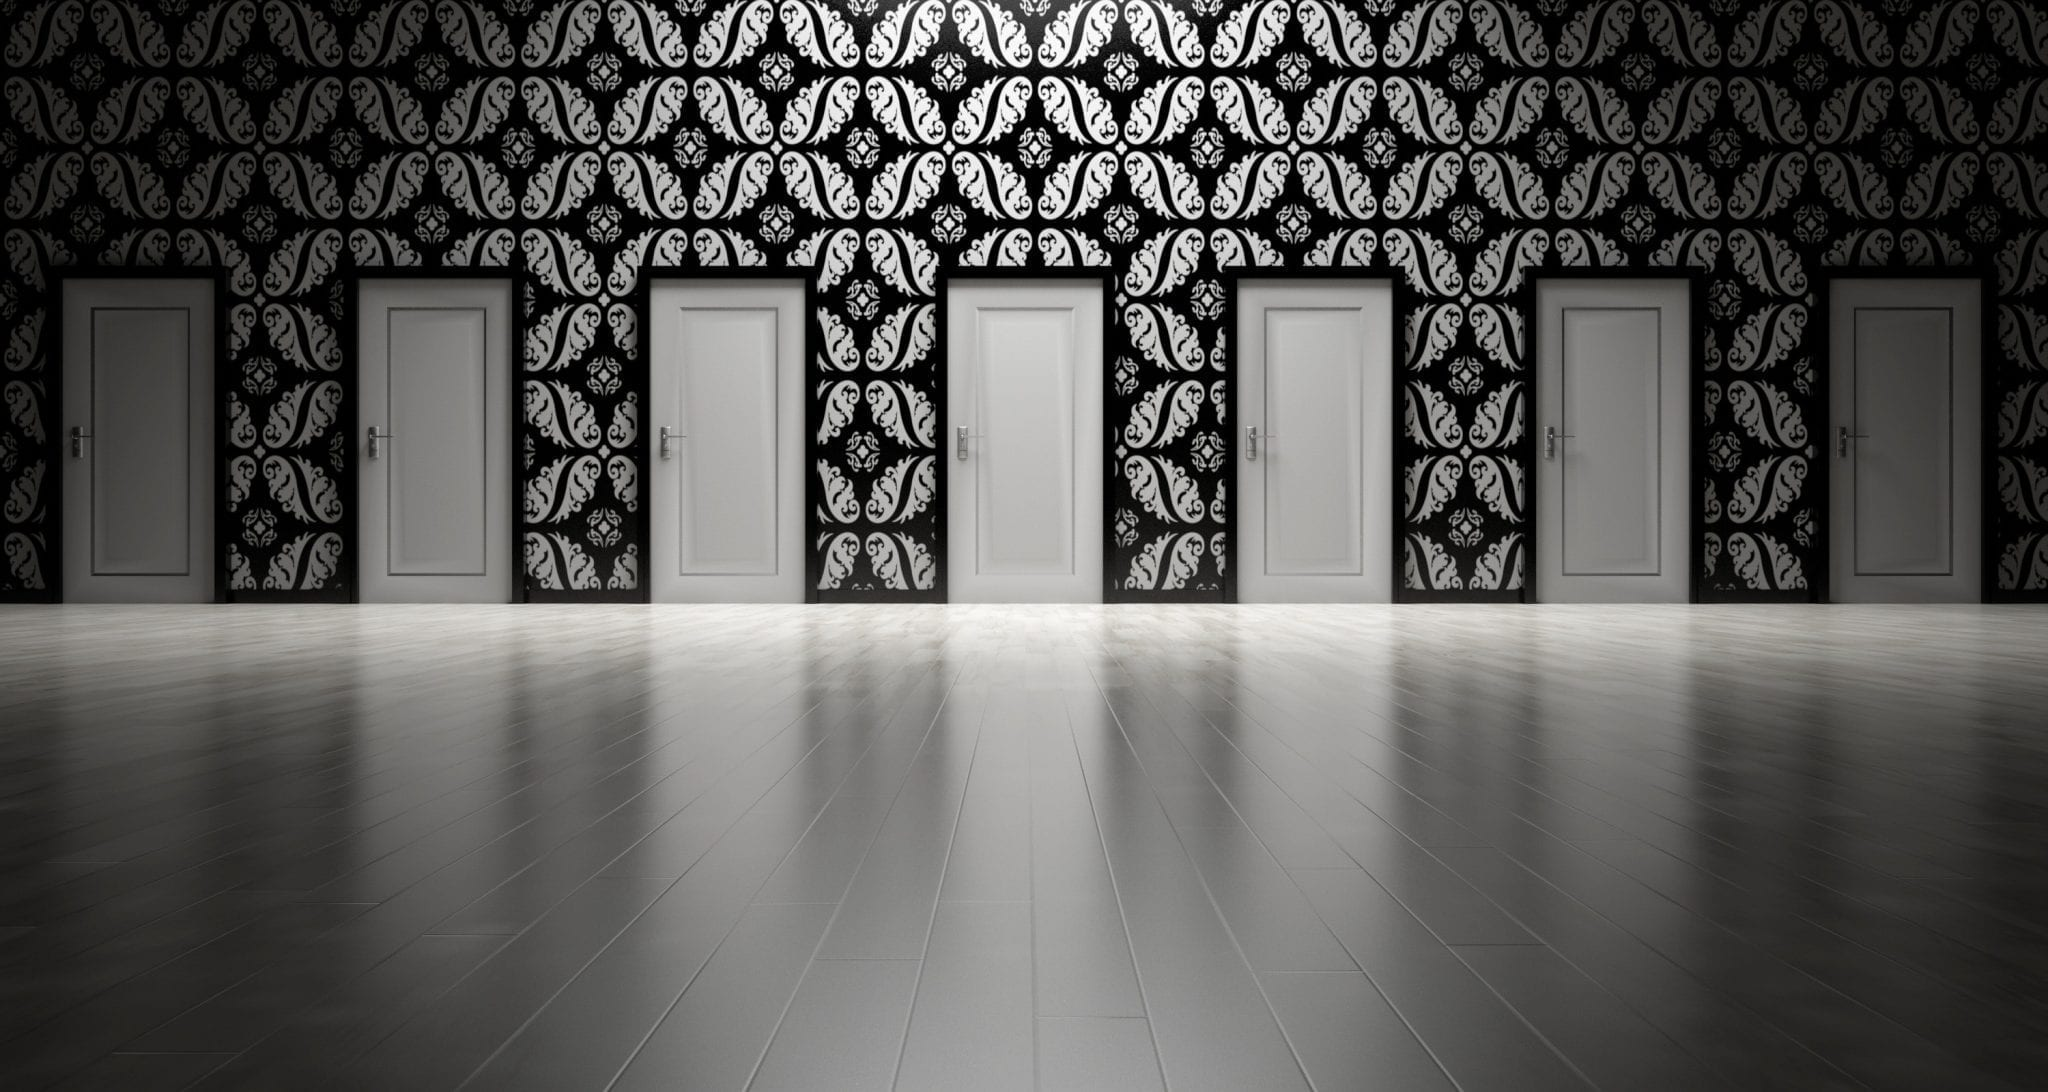 doors lined up arcitecture image black and white